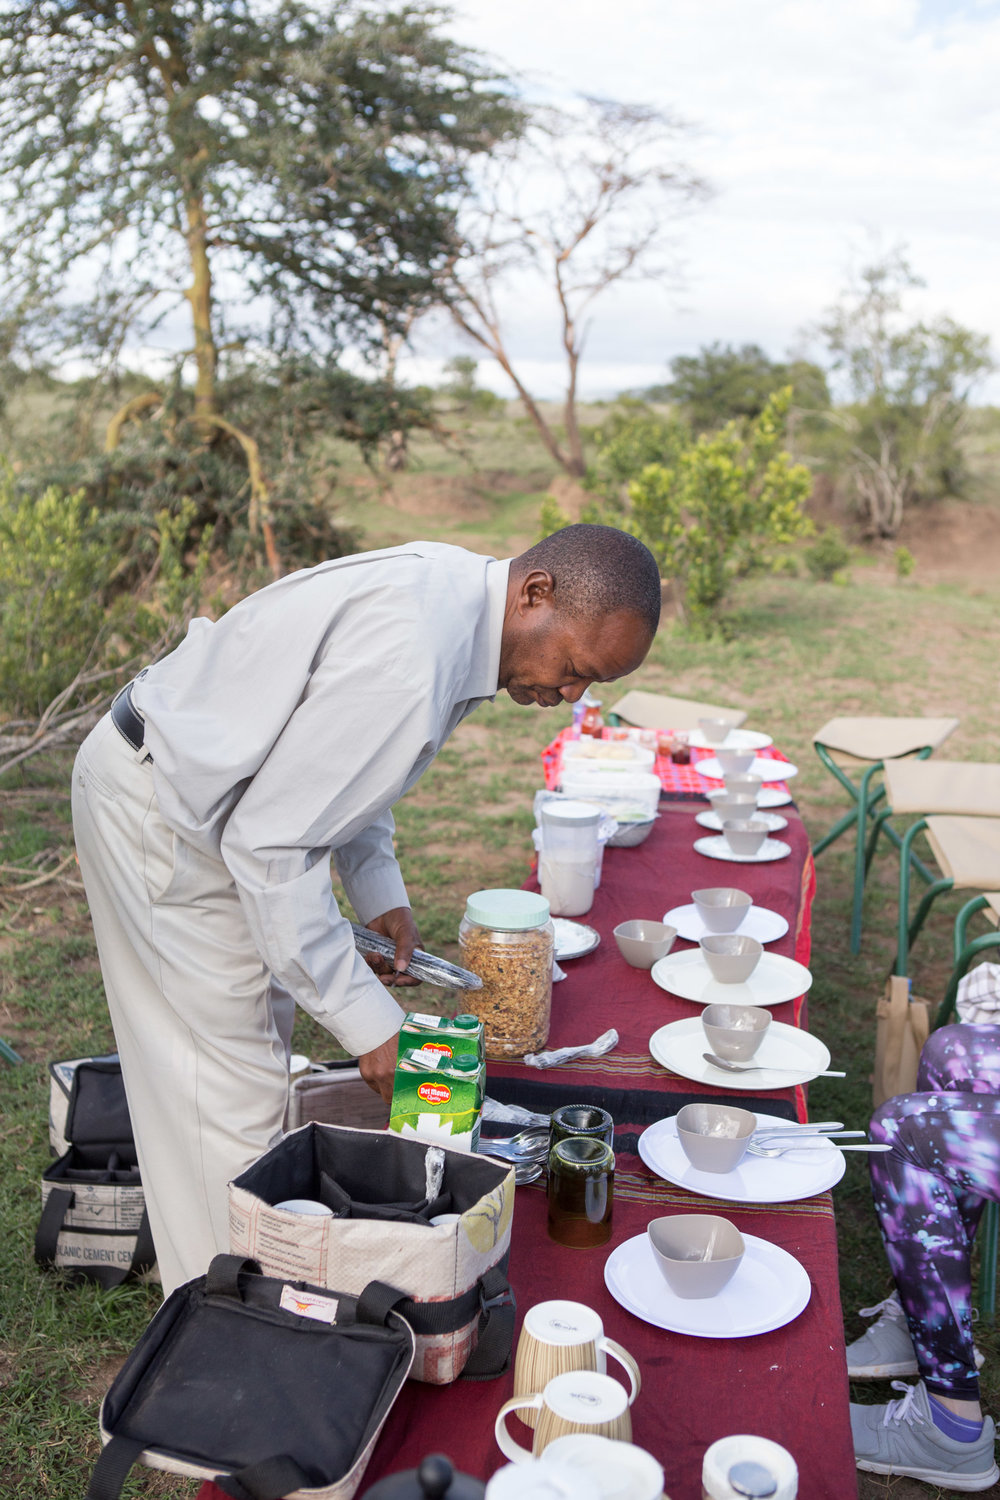 Our guide Albert setting up breakfast